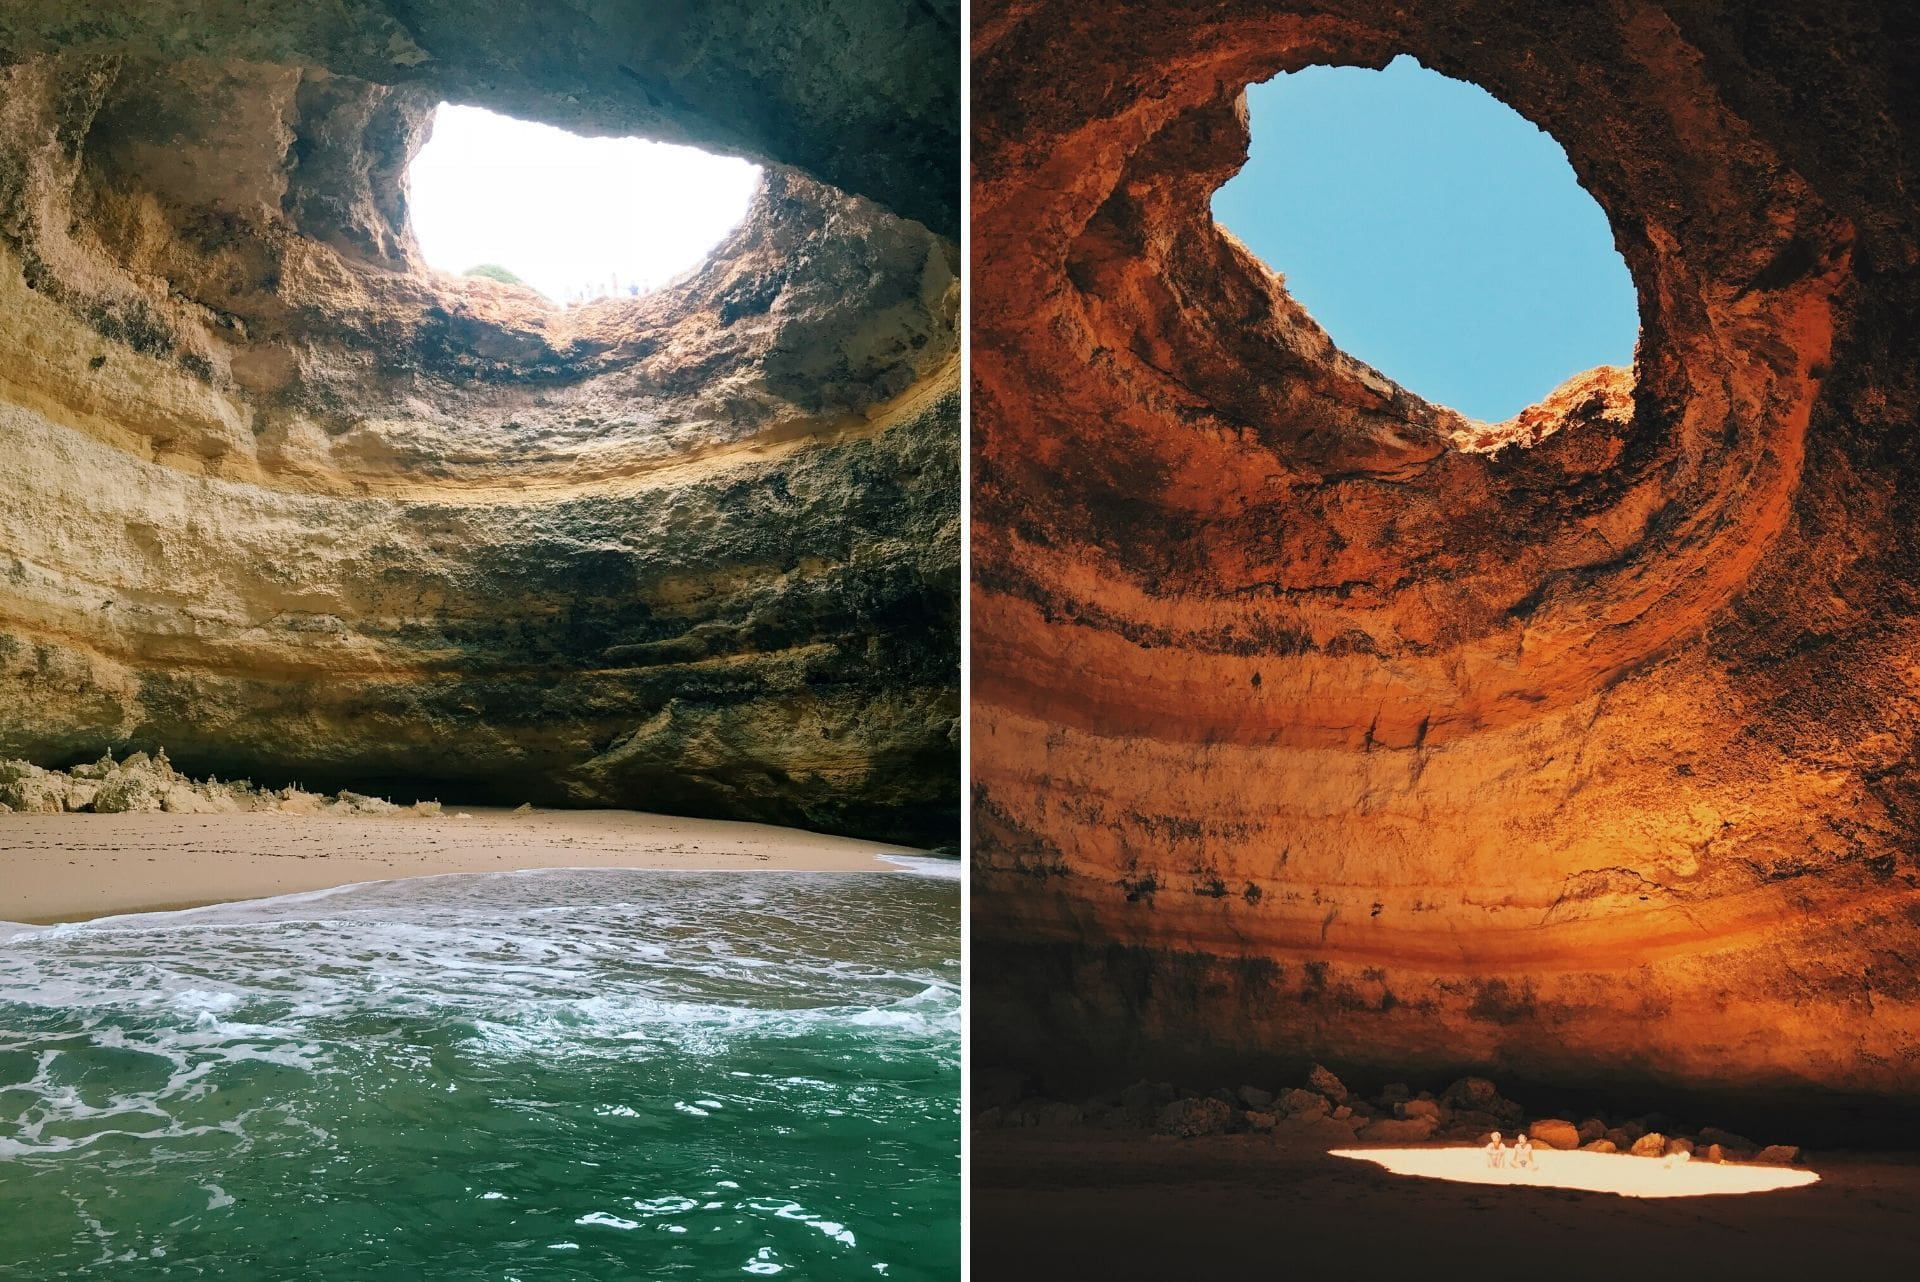 sea-and-sandy-beach-inside-cavern-with-open-light-filled-dome-benagili-cave-portugal